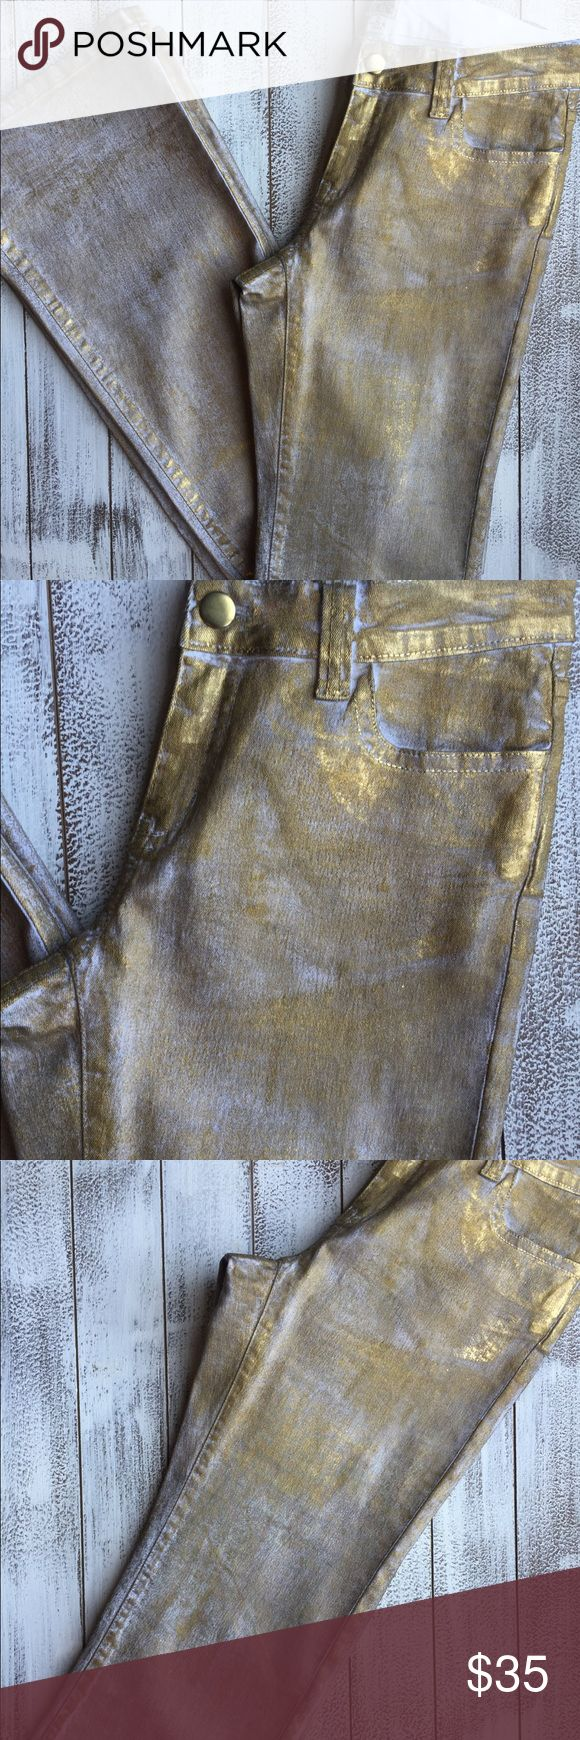 """ONE HOUR ONLY 🎉 CACHÈ GOLD JEANS 👖 Caché gold with white jeans. Size 2. Wonderful condition. Beautiful color. Waist 14"""" Inseam 33"""" Length 42""""  95% Cotton 5% Spandex  Stock photo is not the same exact piece but an example! Cache Jeans Boot Cut"""